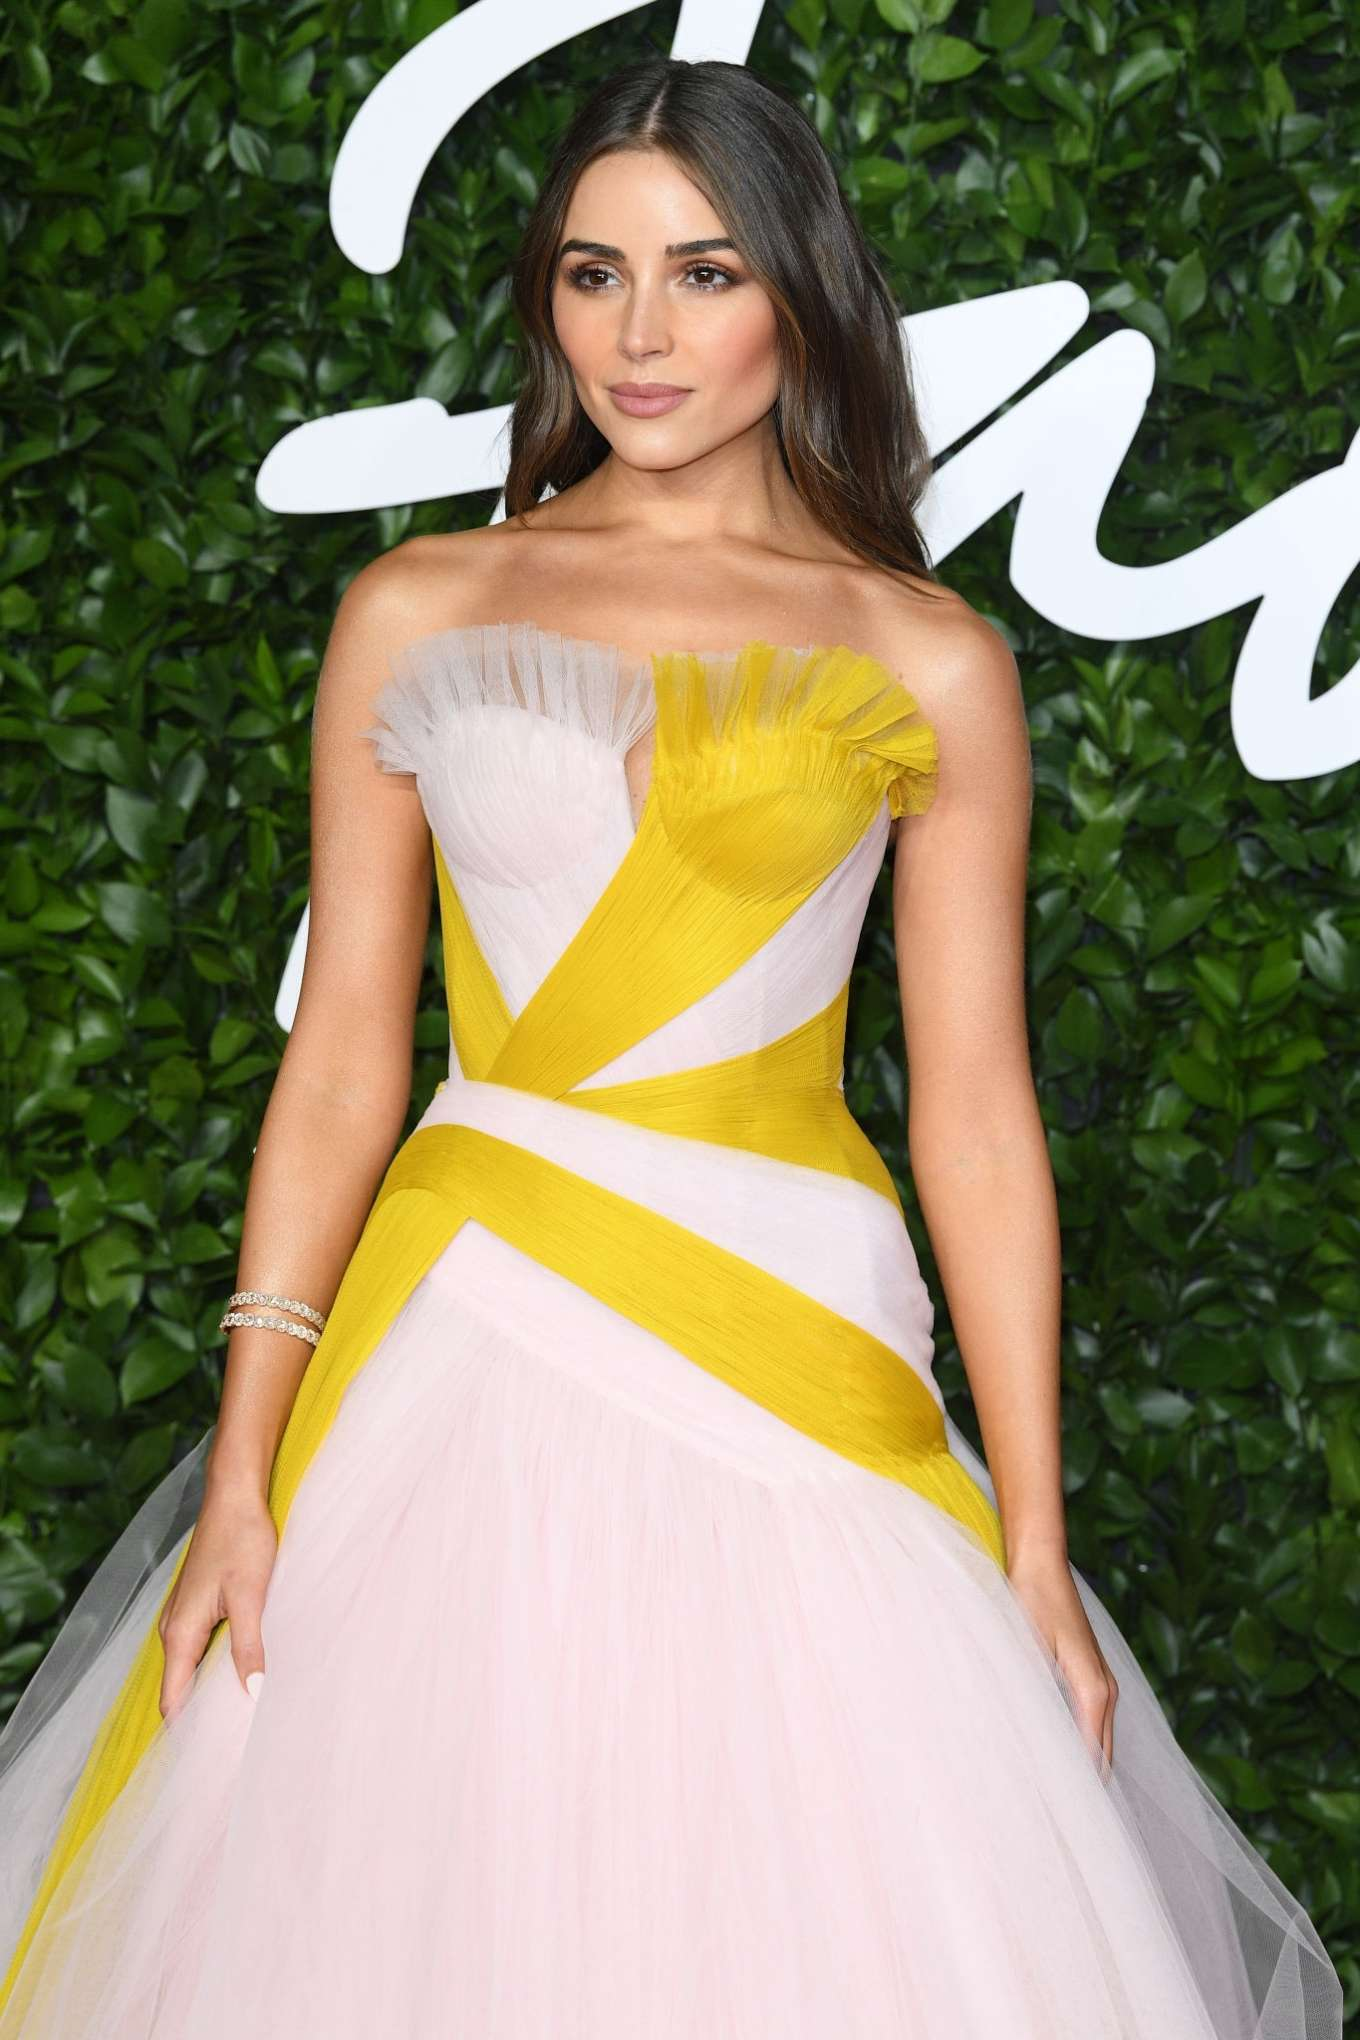 Olivia Culpo 2019 : Olivia Culpo – Fashion Awards 2019 in London-06